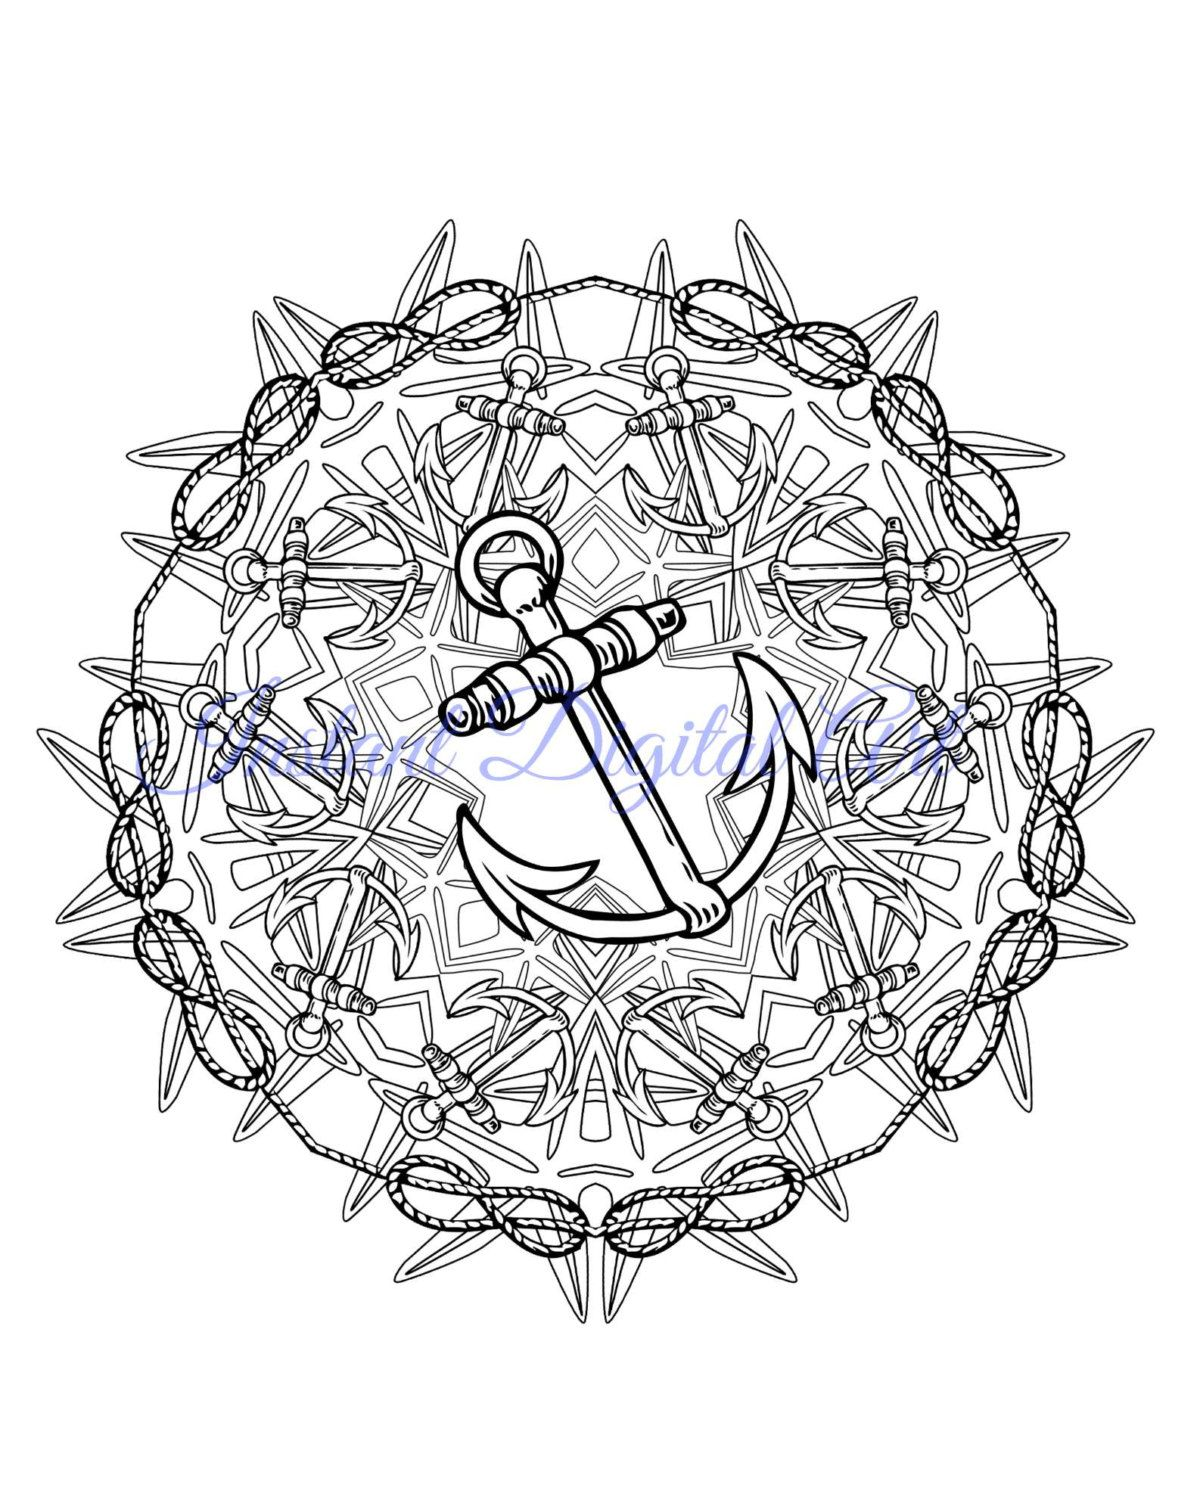 Mandala Coloring Pages Mehndi Henna Black And White Printable Nautical Anchor Ocean Instant Dig Dinosaur Coloring Pages Mandala Coloring Pages Coloring Pages